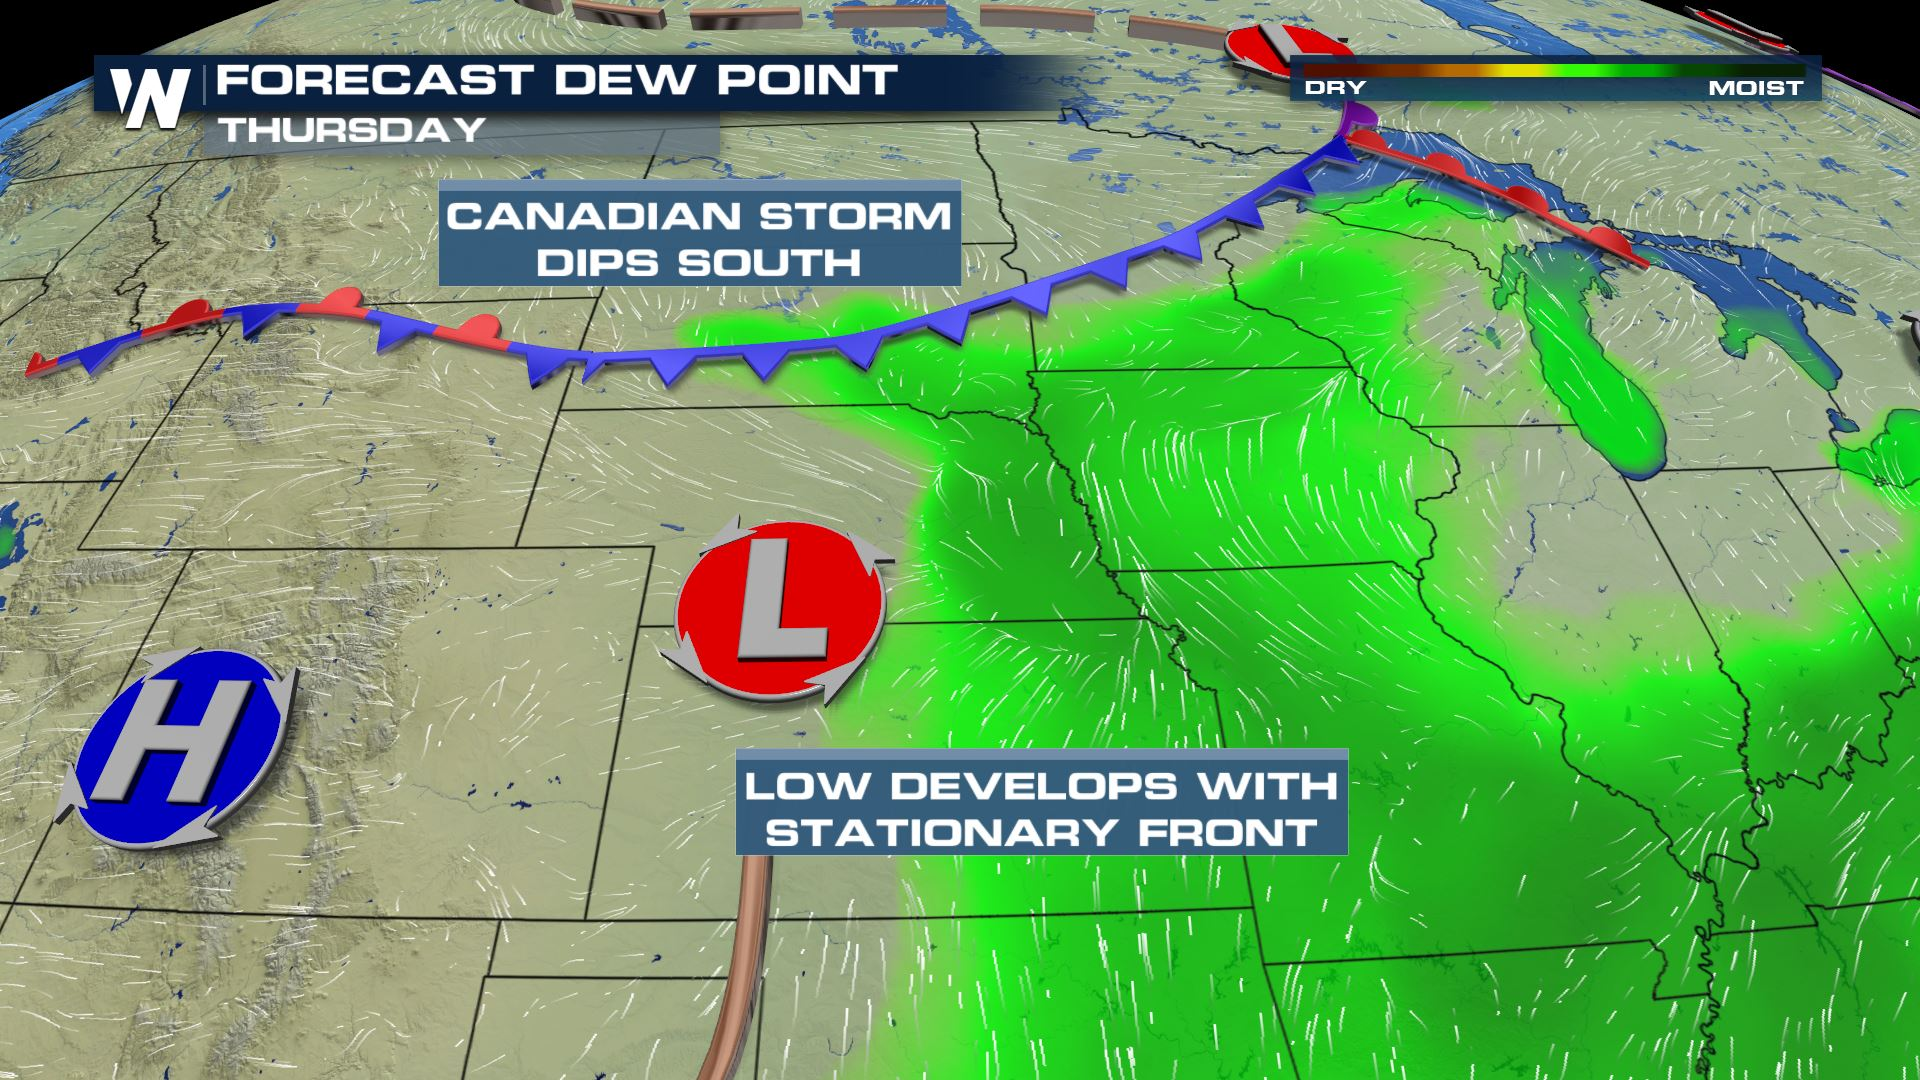 Building Central Storms Through Midweek